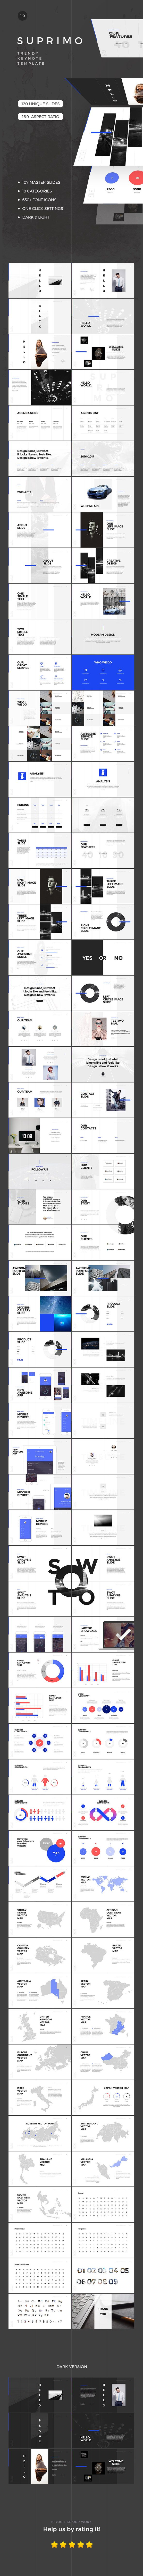 SUPRIMO Keynote Template. Download: https://graphicriver.net/item/suprimo-keynote-template/19859515?ref=thanhdesign